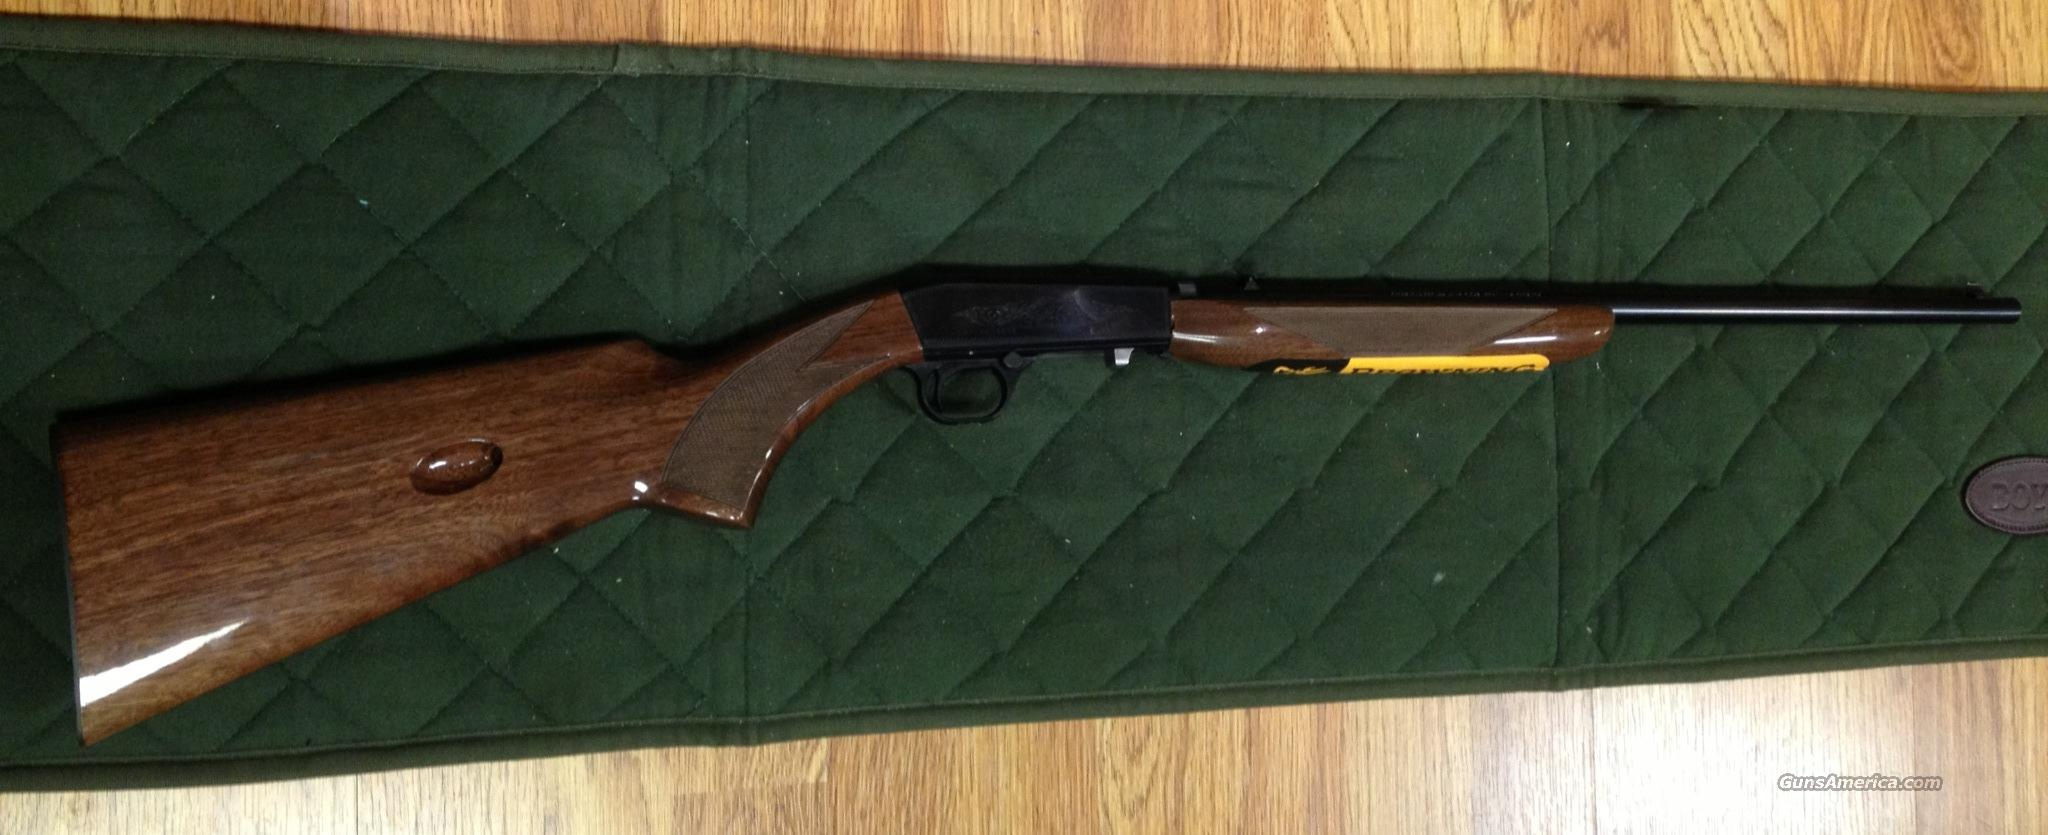 NIB Browning Semi Auto-22, Grade I, .22LR  Guns > Rifles > Browning Rifles > Semi Auto > Hunting